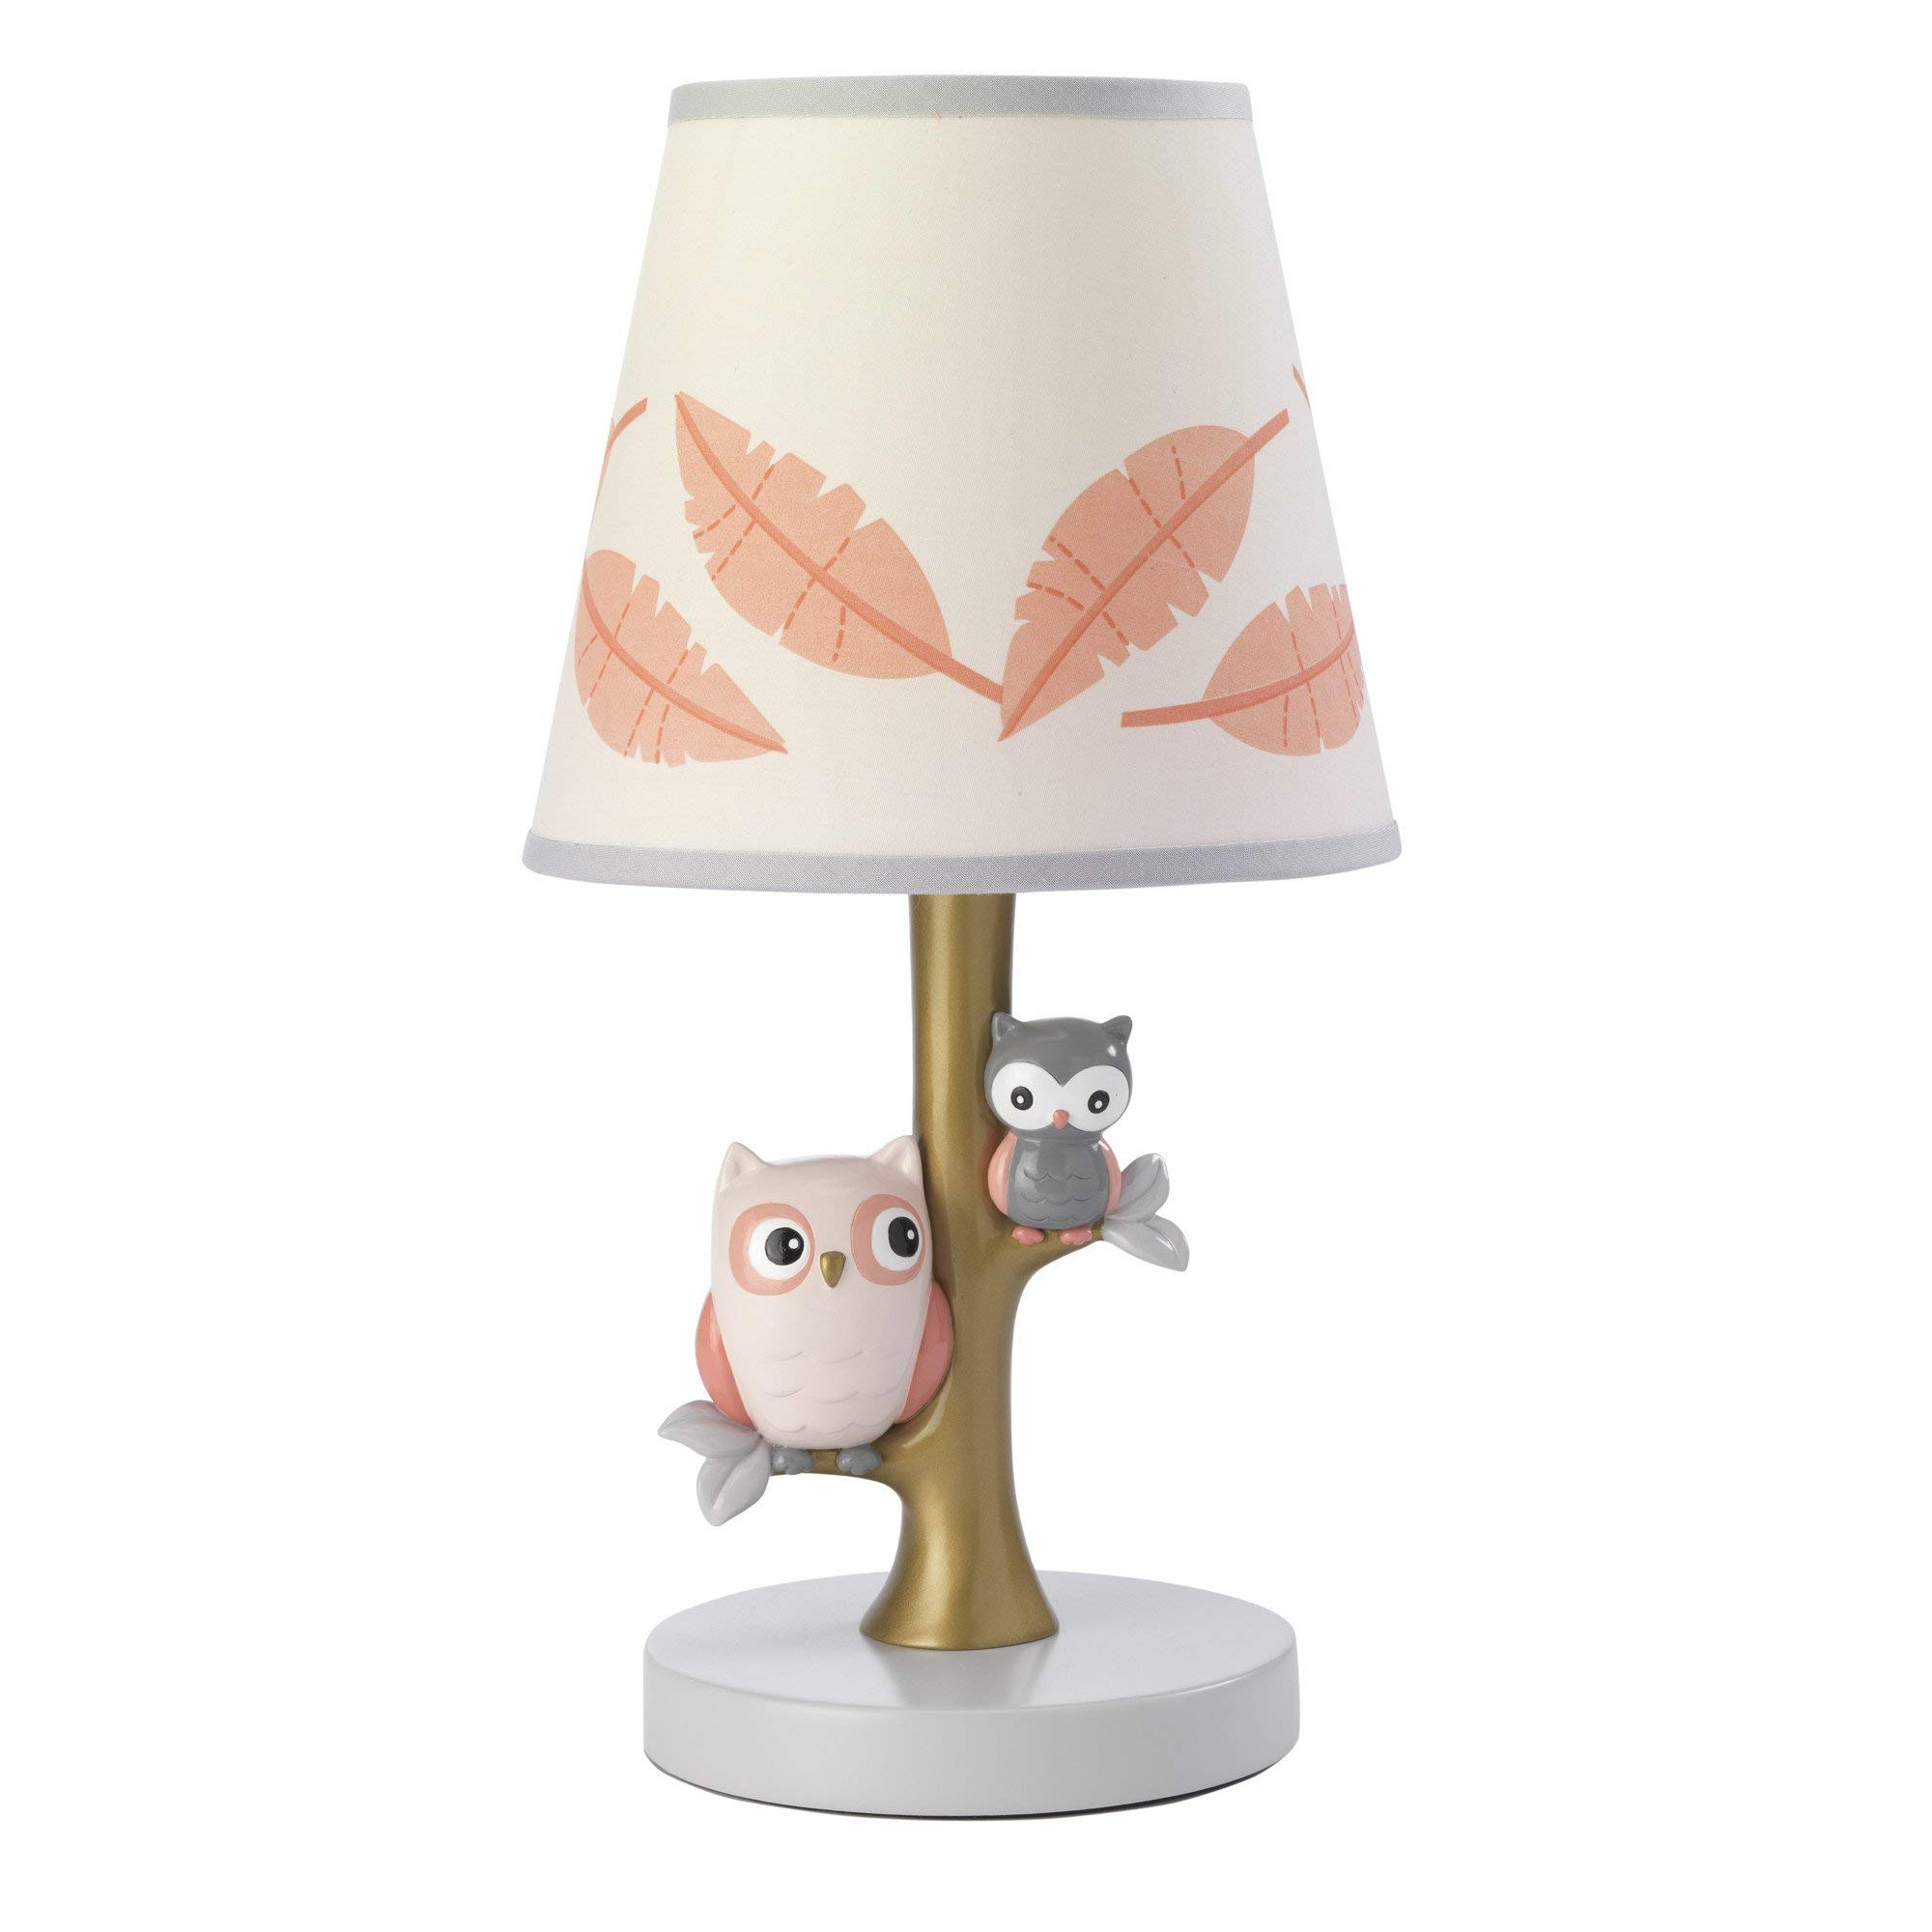 Lambs & Ivy Family Tree Coral/Gray/Gold Owl Lamp with Shade & Bulb